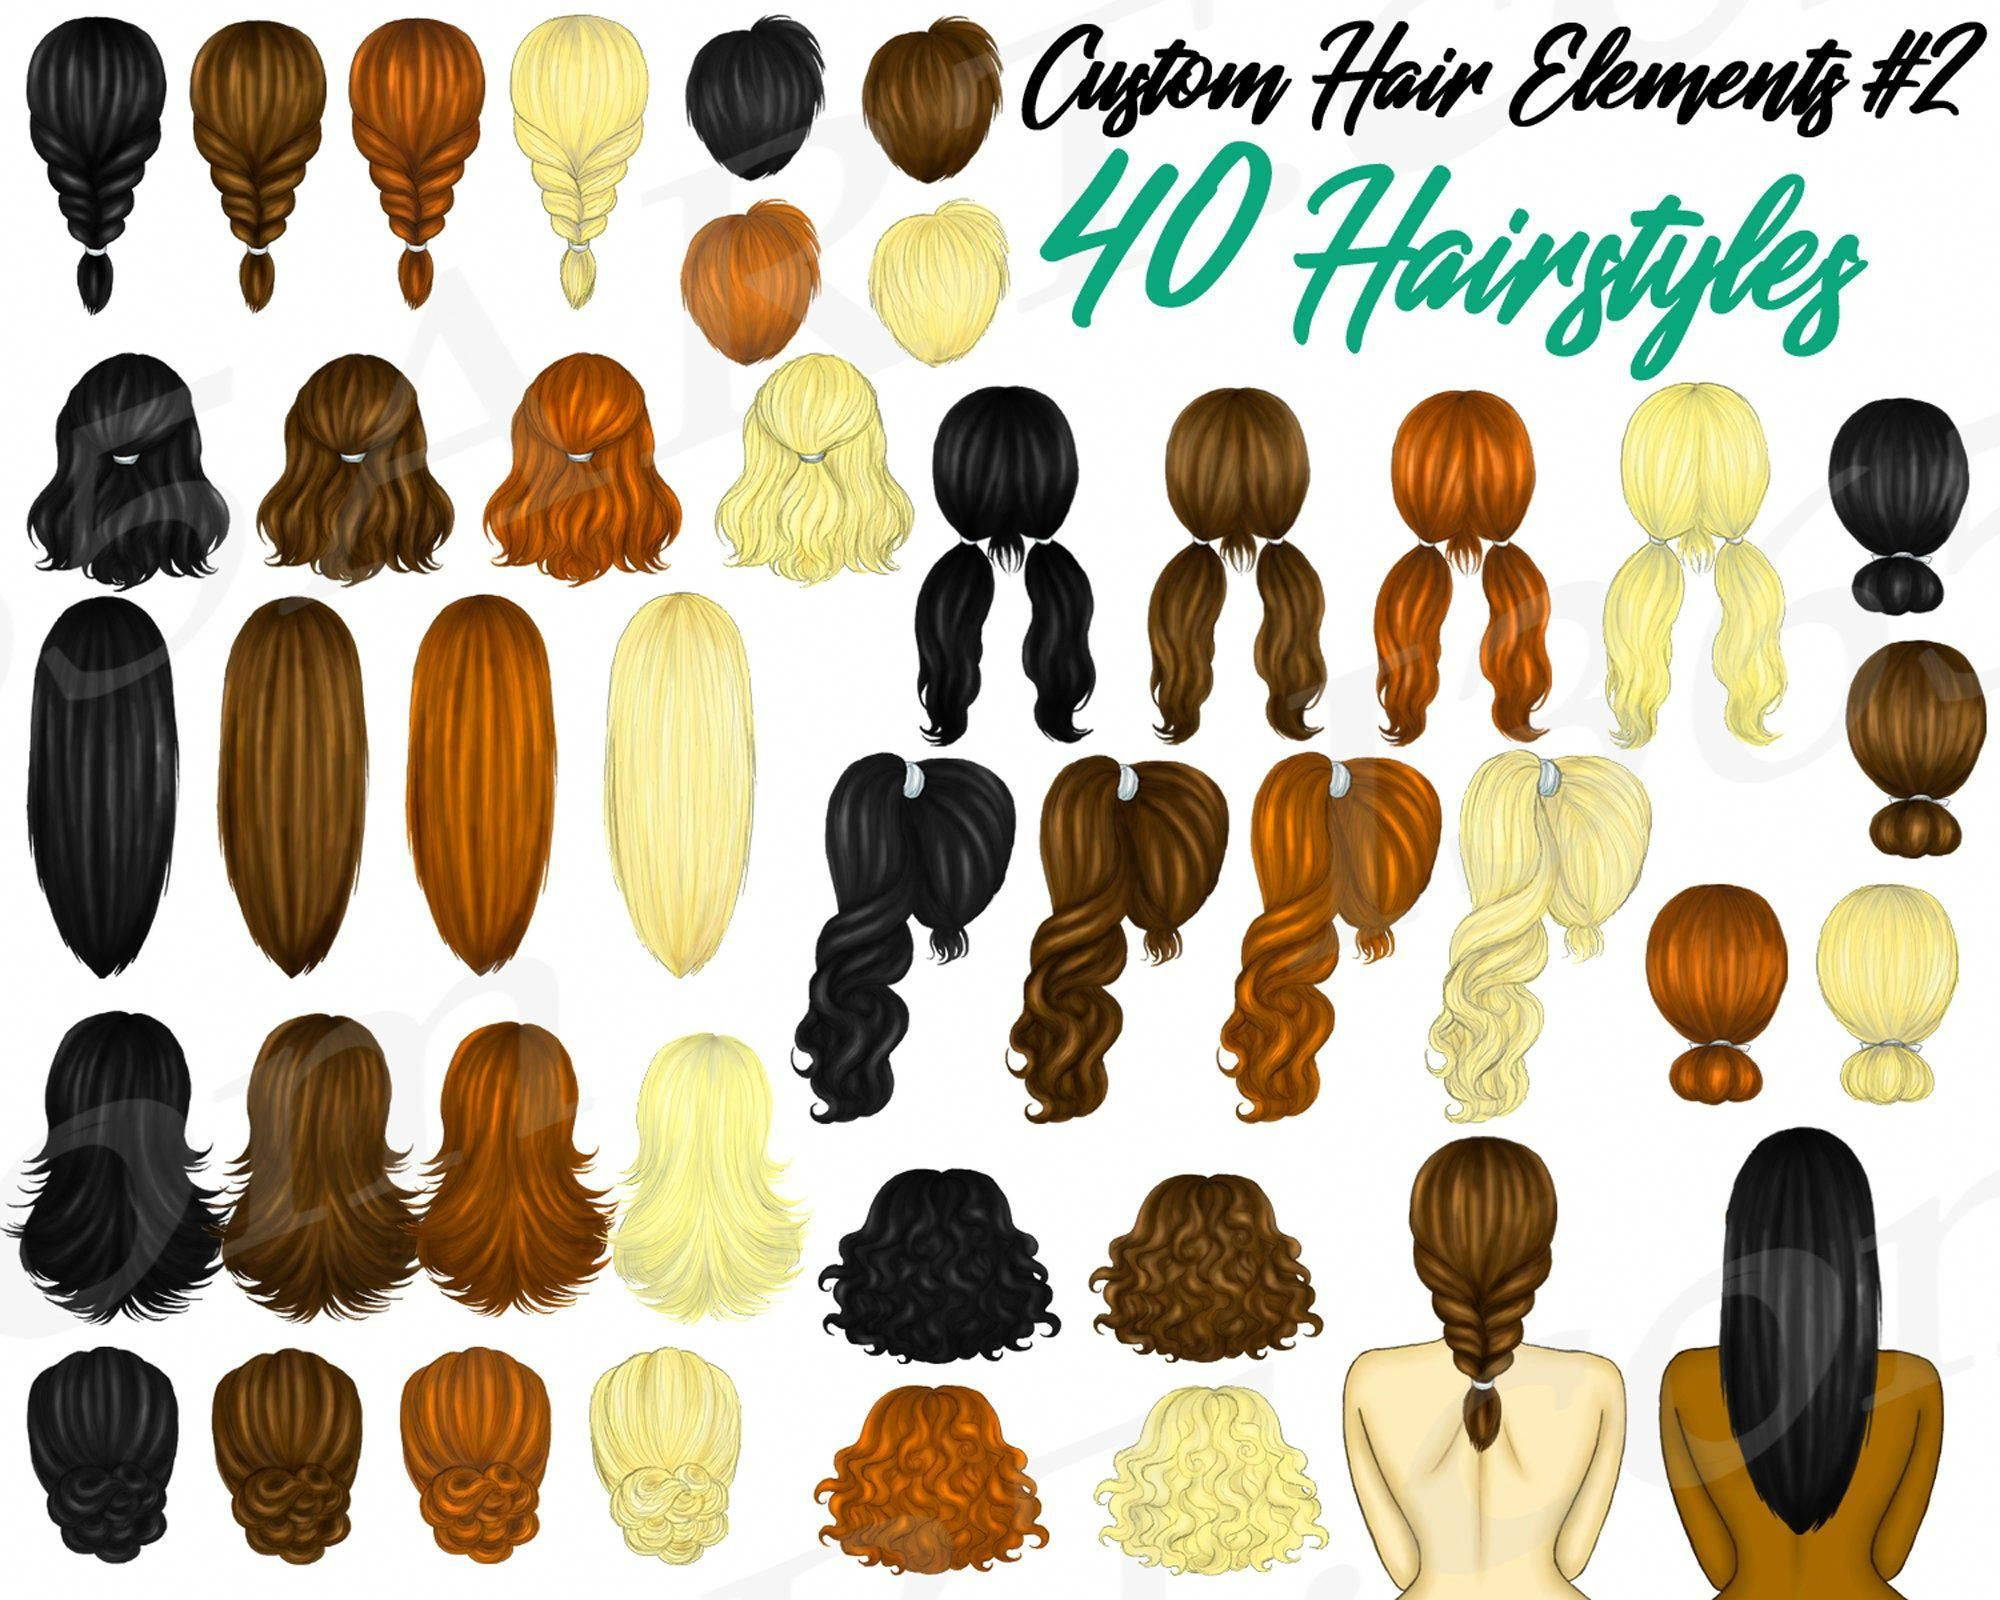 Custom Hairstyles Clipart Hairstyles Basic Hairstyles Womens Hair Long Hairstyles Short Hairstyles Diy Planner Fashion Illustration Basic Hairstyles Hair Clipart Hair Styles